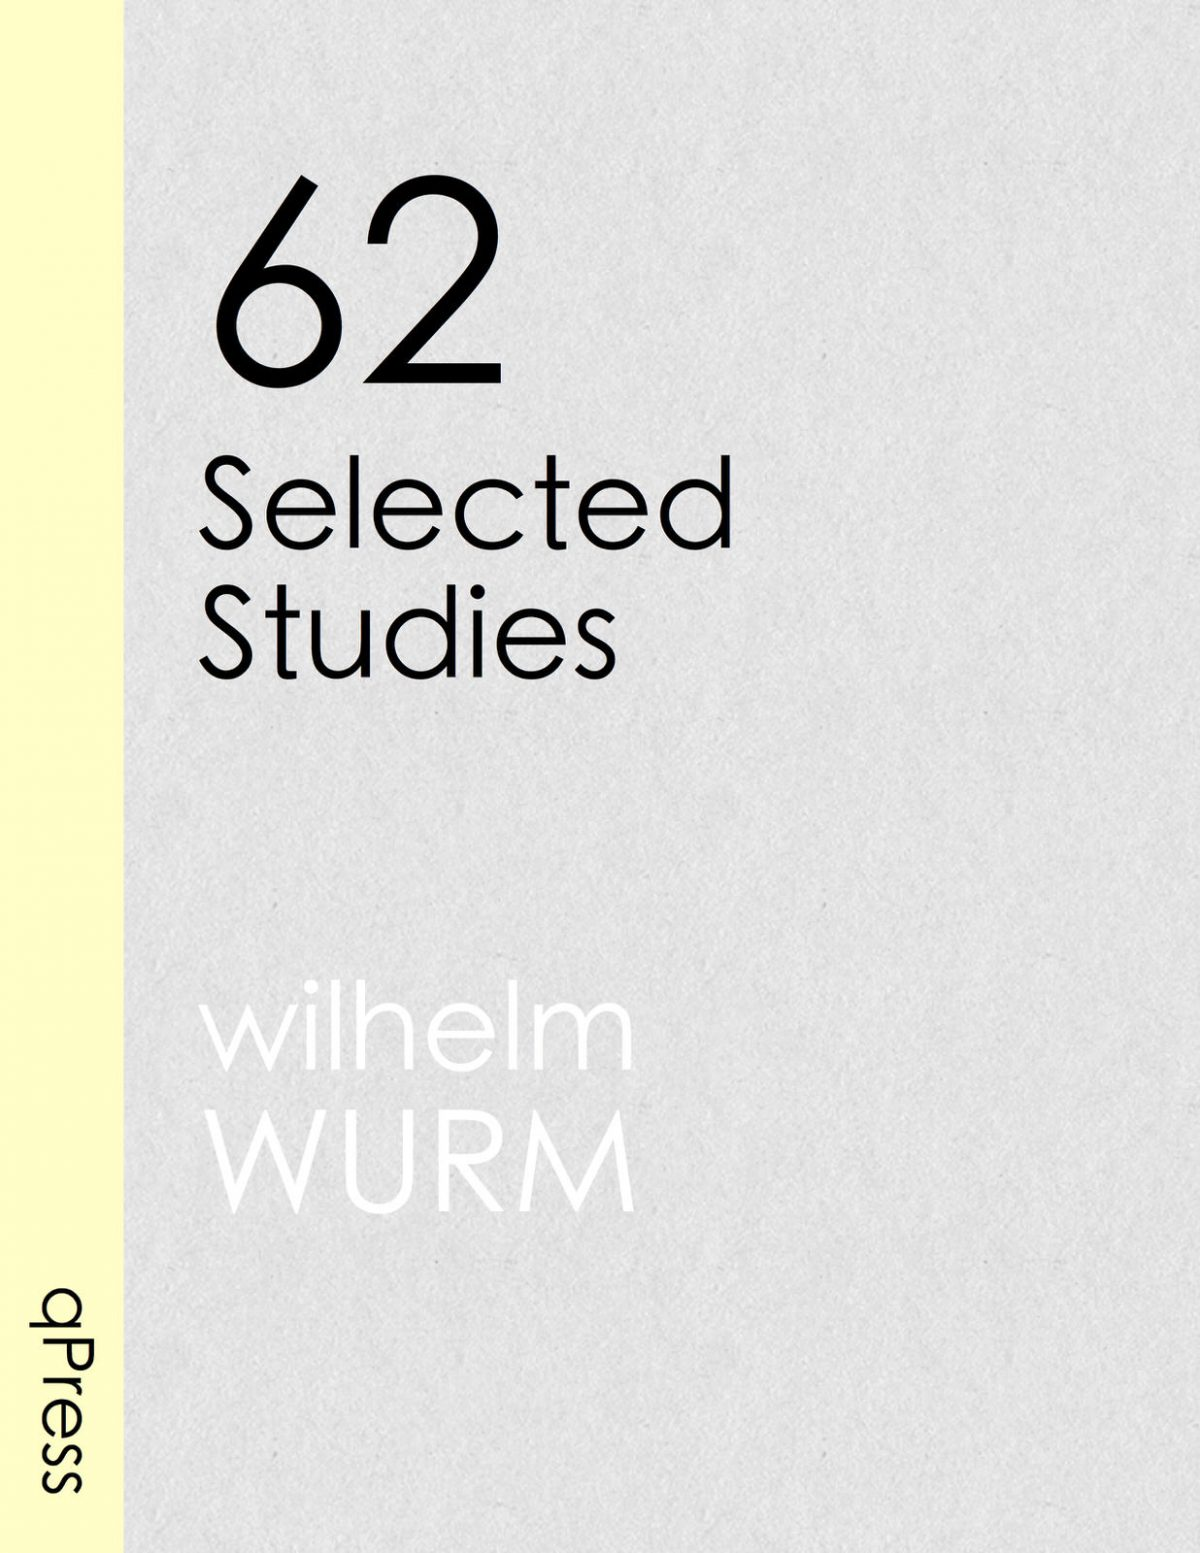 wurm-62-selected-studies